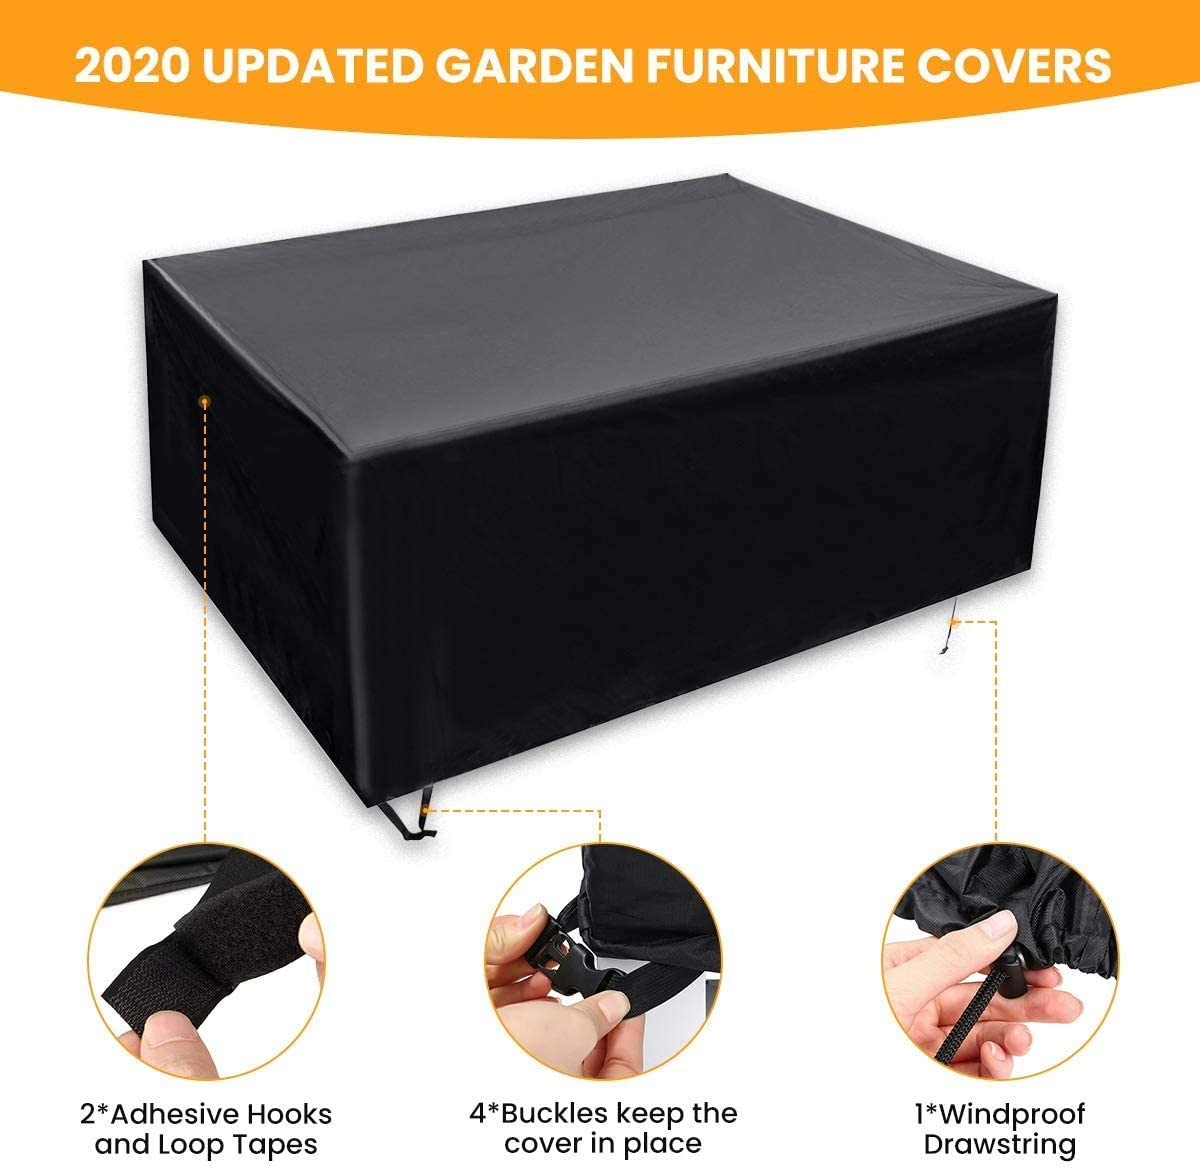 NTR Garden Furniture Covers 600D Heavy Duty Oxford Fabric Windproof Waterproof Anti-AV Cube Outdoor Patio Table Cover 180x120*74cm,130x130x74cm